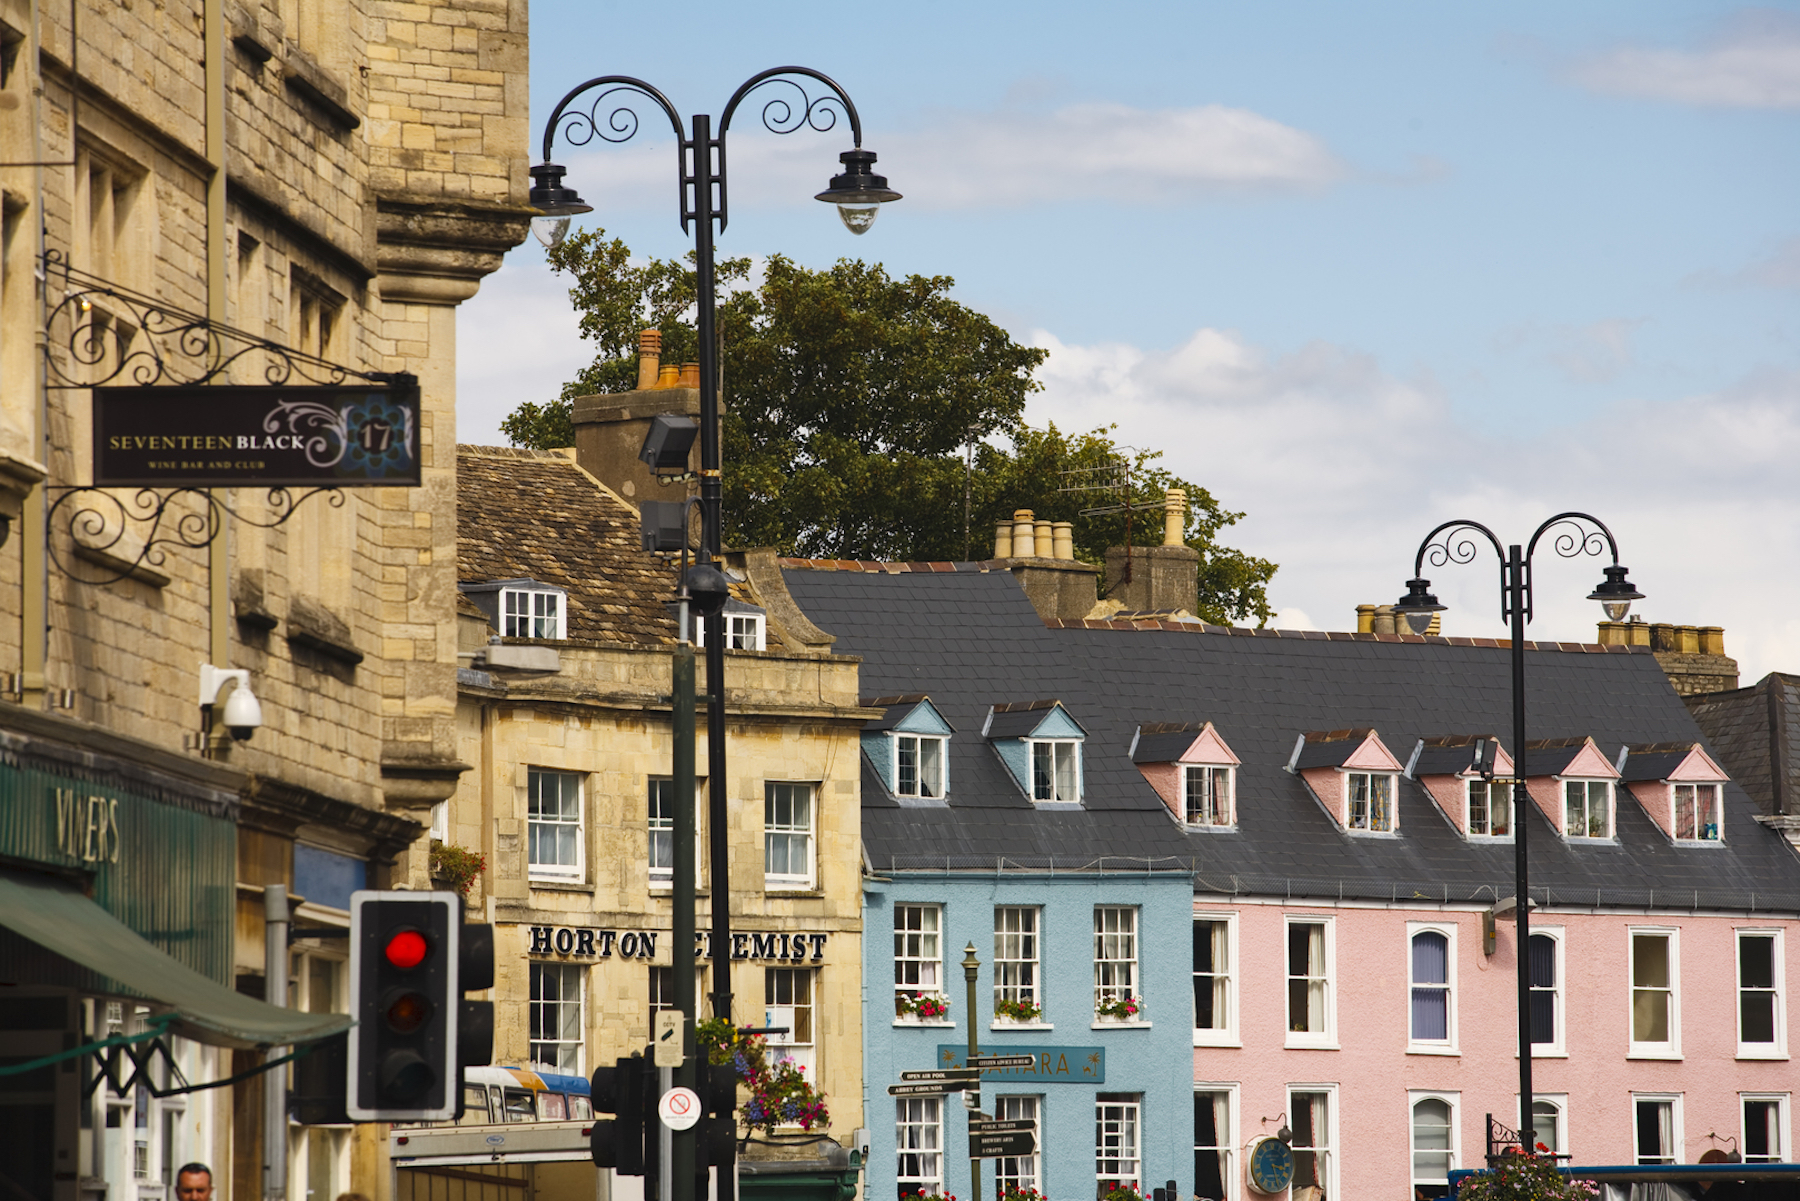 Cirencester - VisitEngland/Cotswolds.com